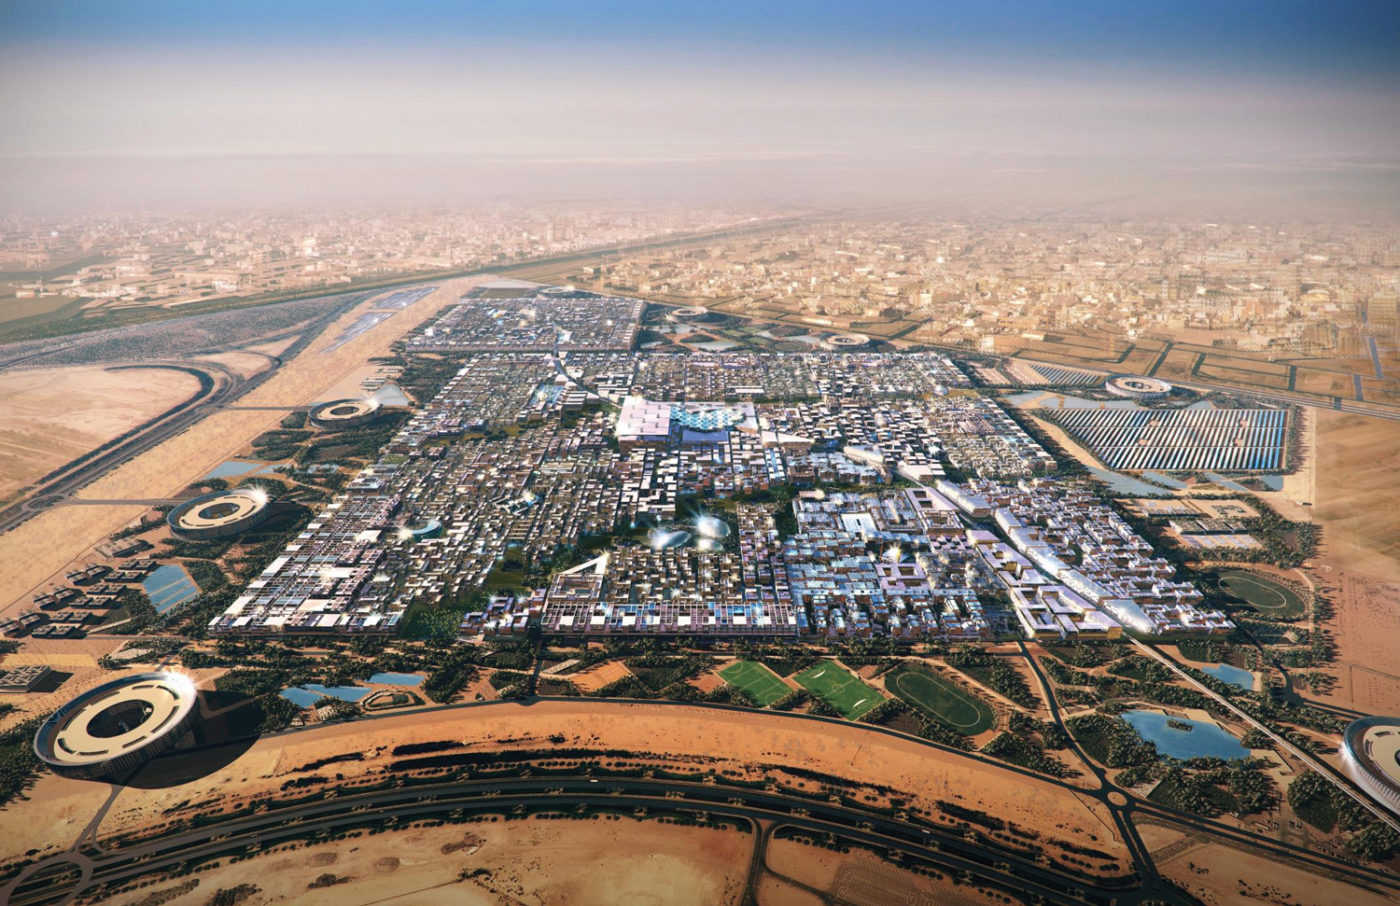 Masdar City and Its Mobility Paradigm 10 Years Later